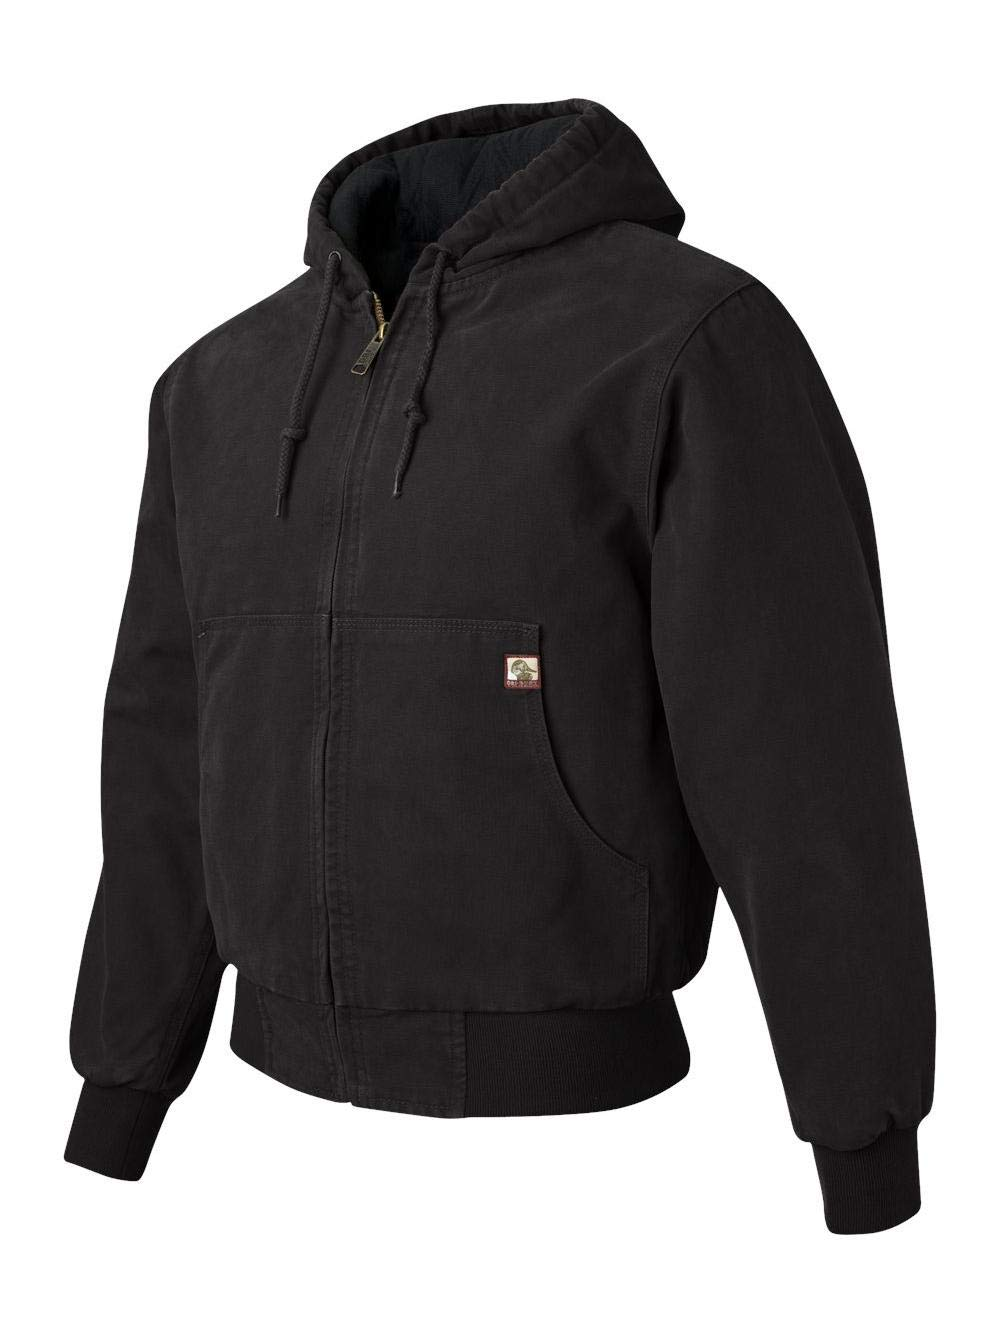 DRI Duck - Cheyenne Hooded Boulder Cloth Jacket with Tricot Quilt Lining - 5020 - XS - Black by DRI Duck